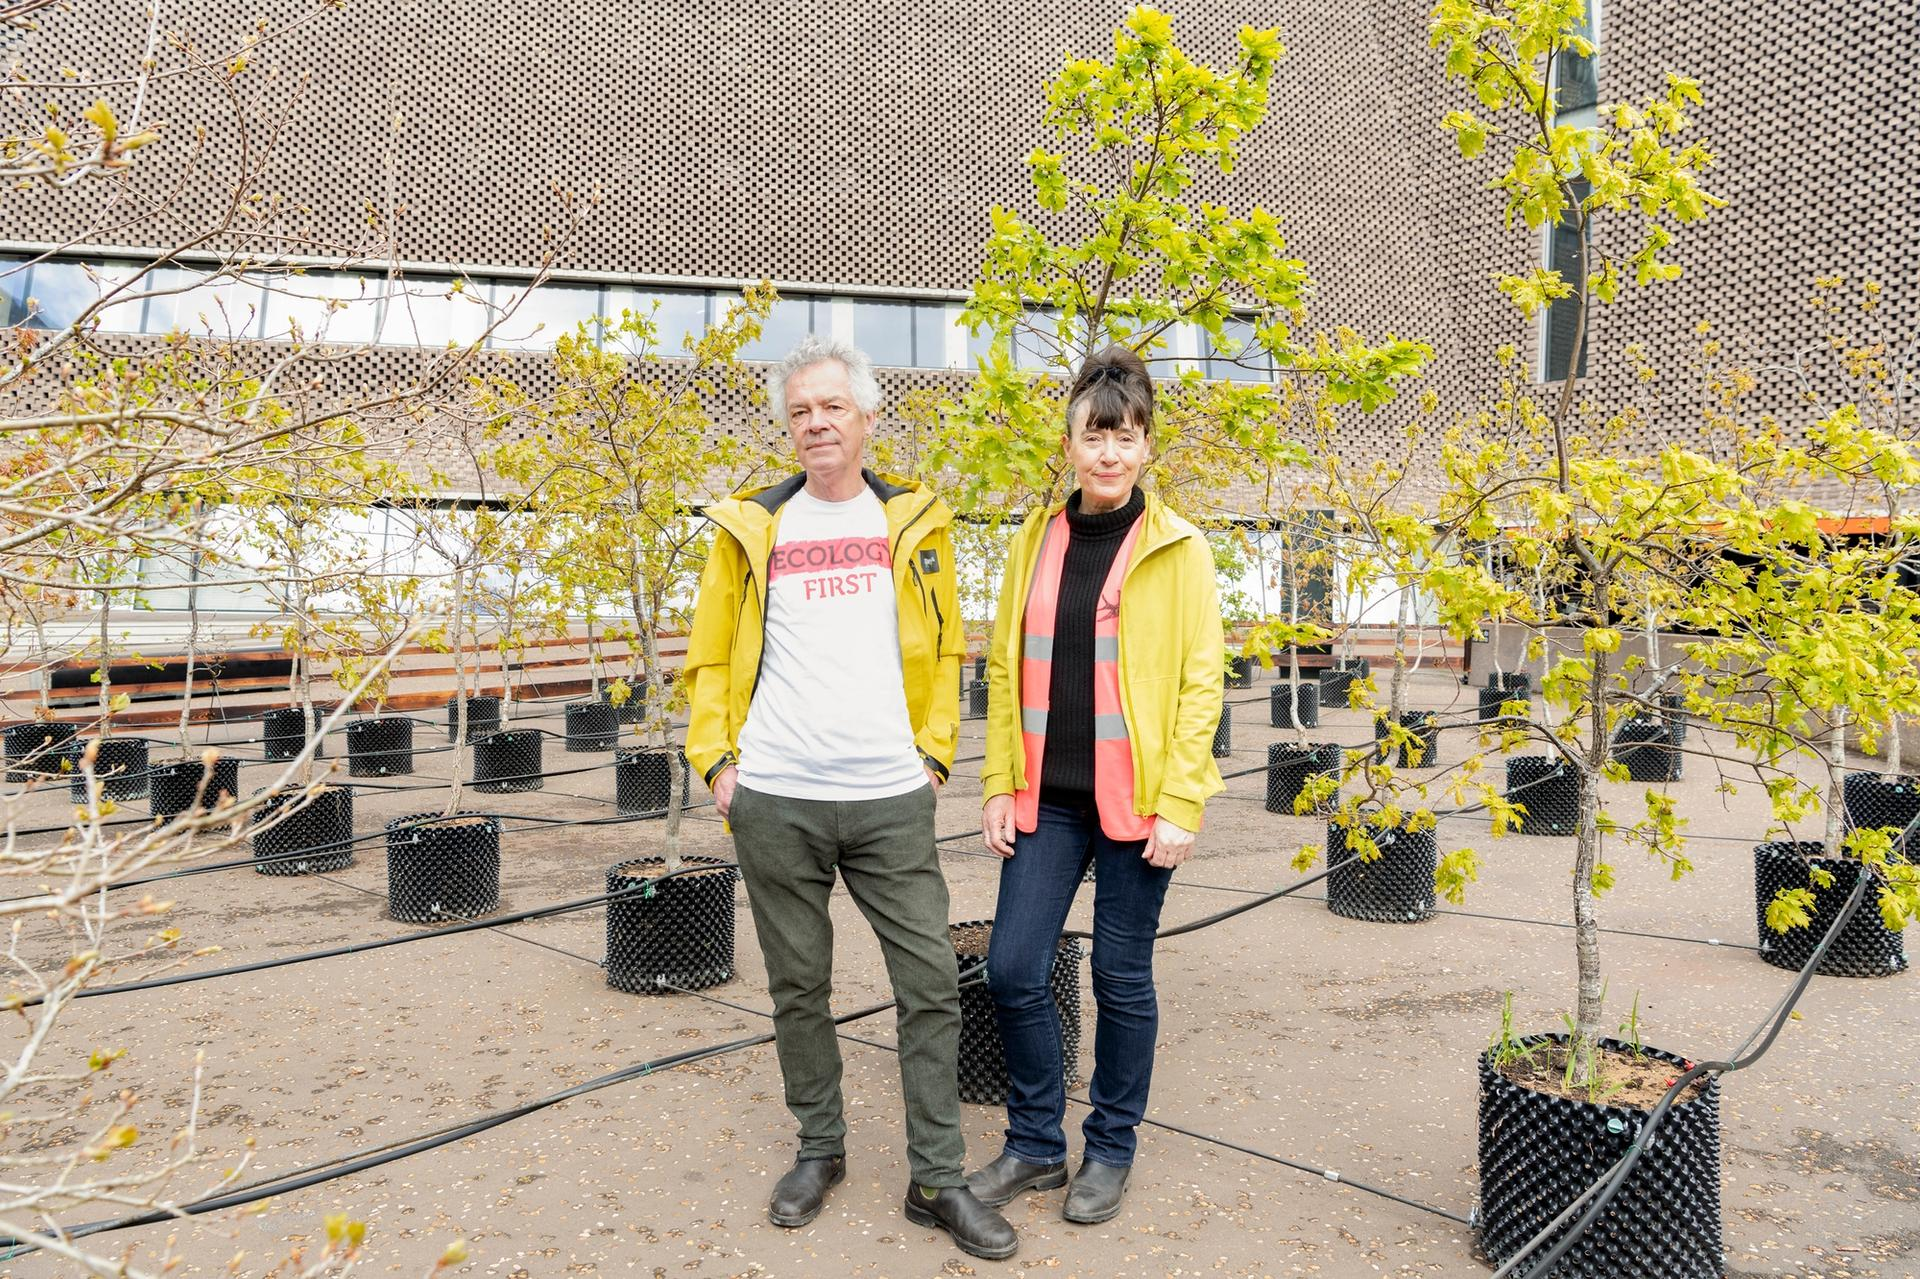 Artist duo Ackroyd and Harvey have planted 100 oak trees outside Tate Modern Ackroyd & Harvey, Beuys' Acorns, 2021. (c) Tate Photography (Seraphina Neville)